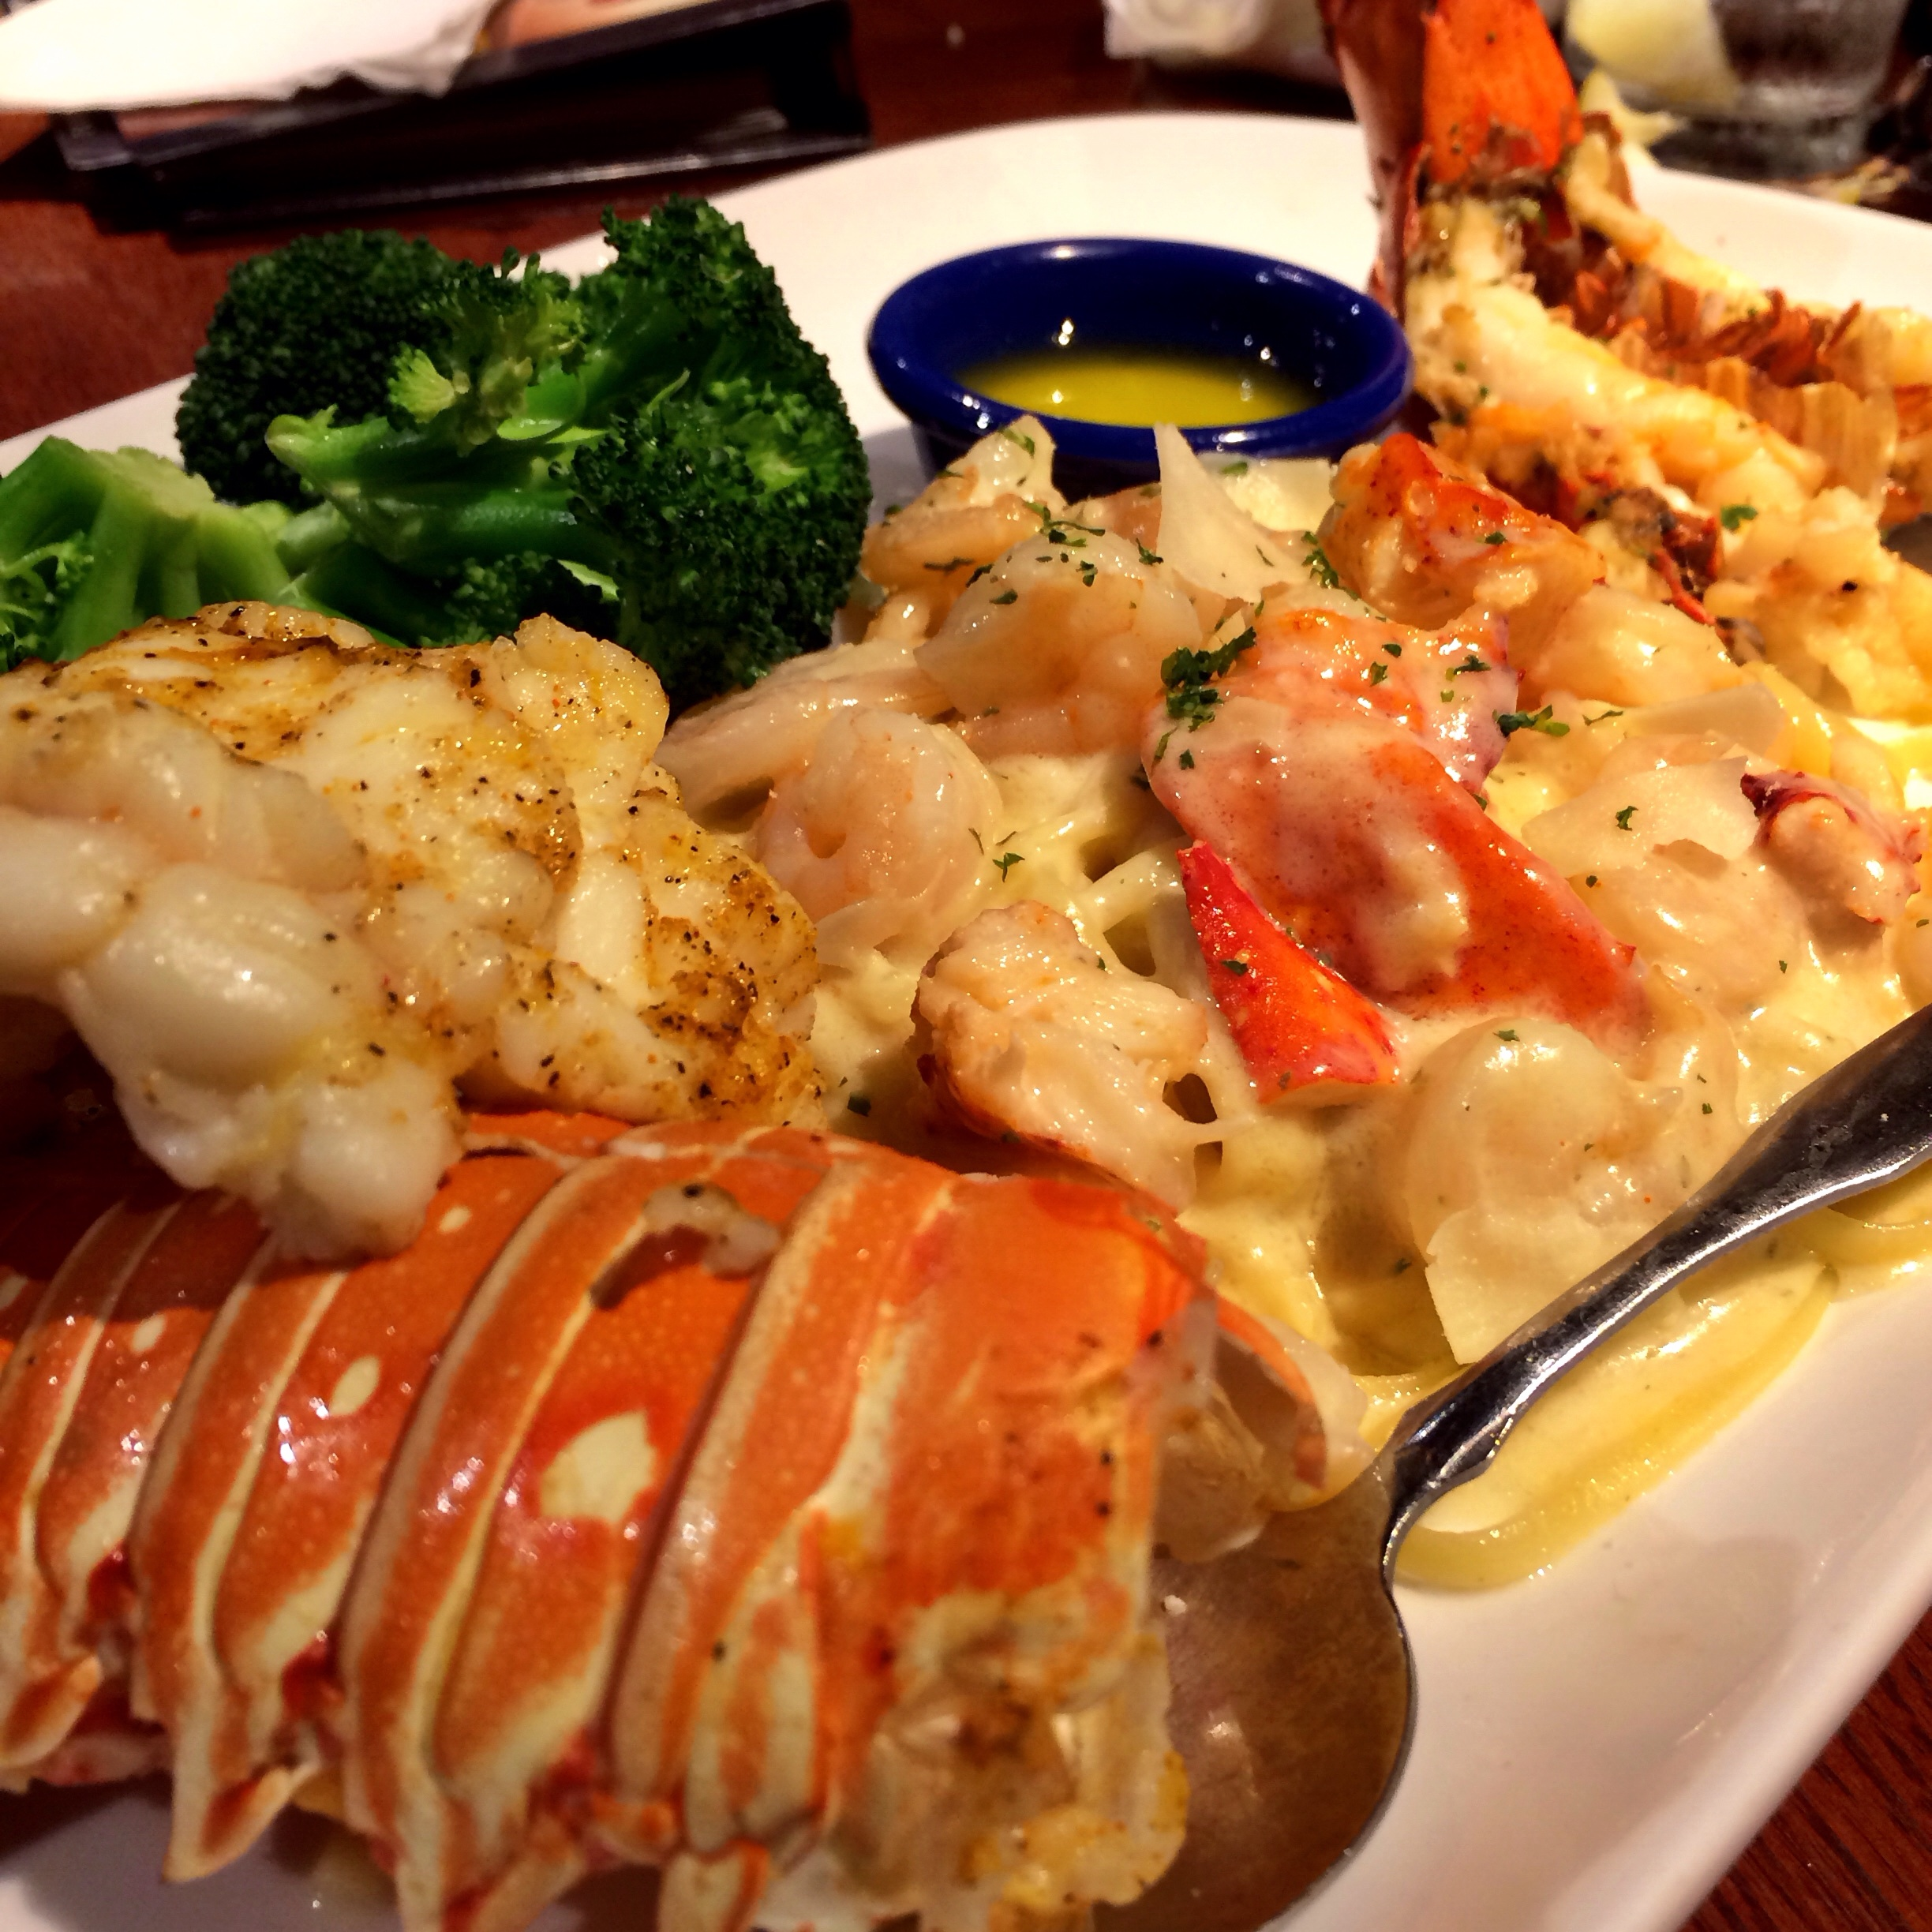 Lobster Lover's Dream. A succulent rock lobster tail and sweet split Maine lobster tail, roasted and served with lobster-and-shrimp linguini Alfredo